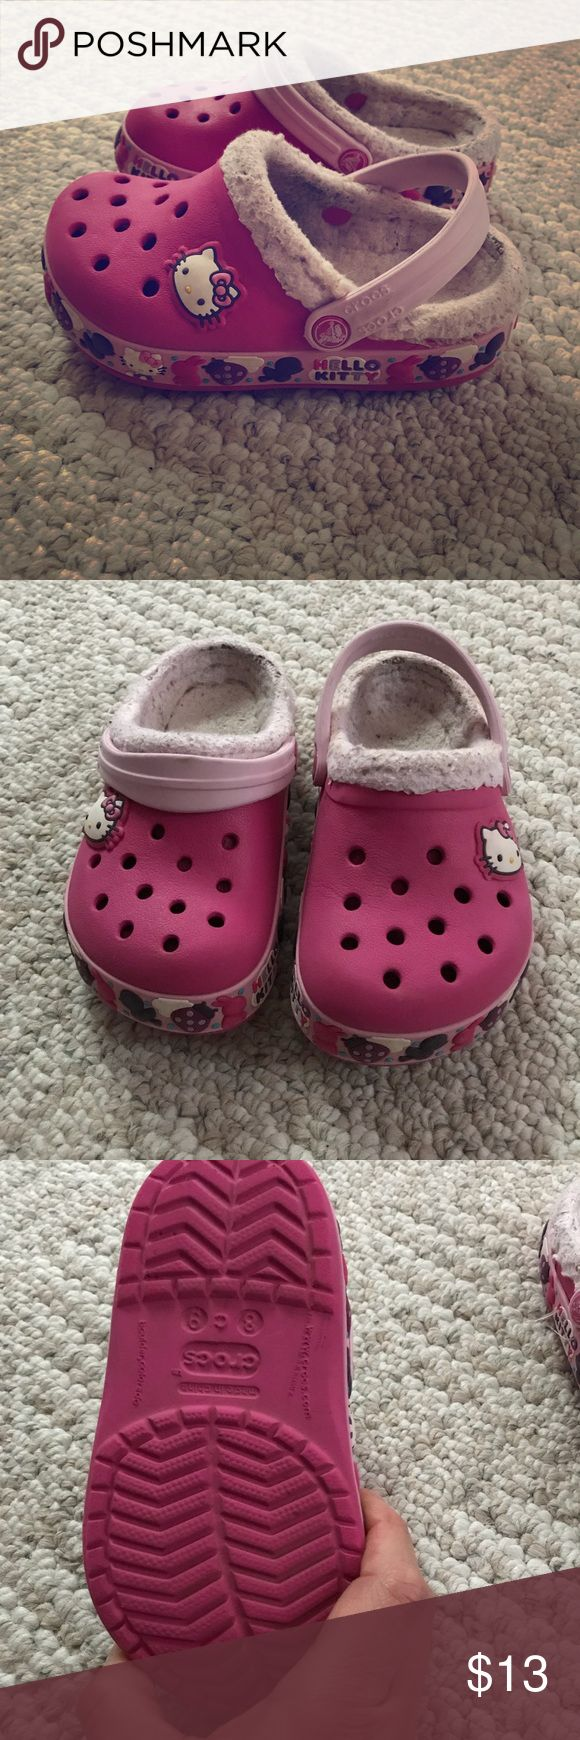 Toddler crocs Size 8/9 toddler hello kitty crocs . Good condition just a little bit dirty in the inside of the shoe CROCS Shoes